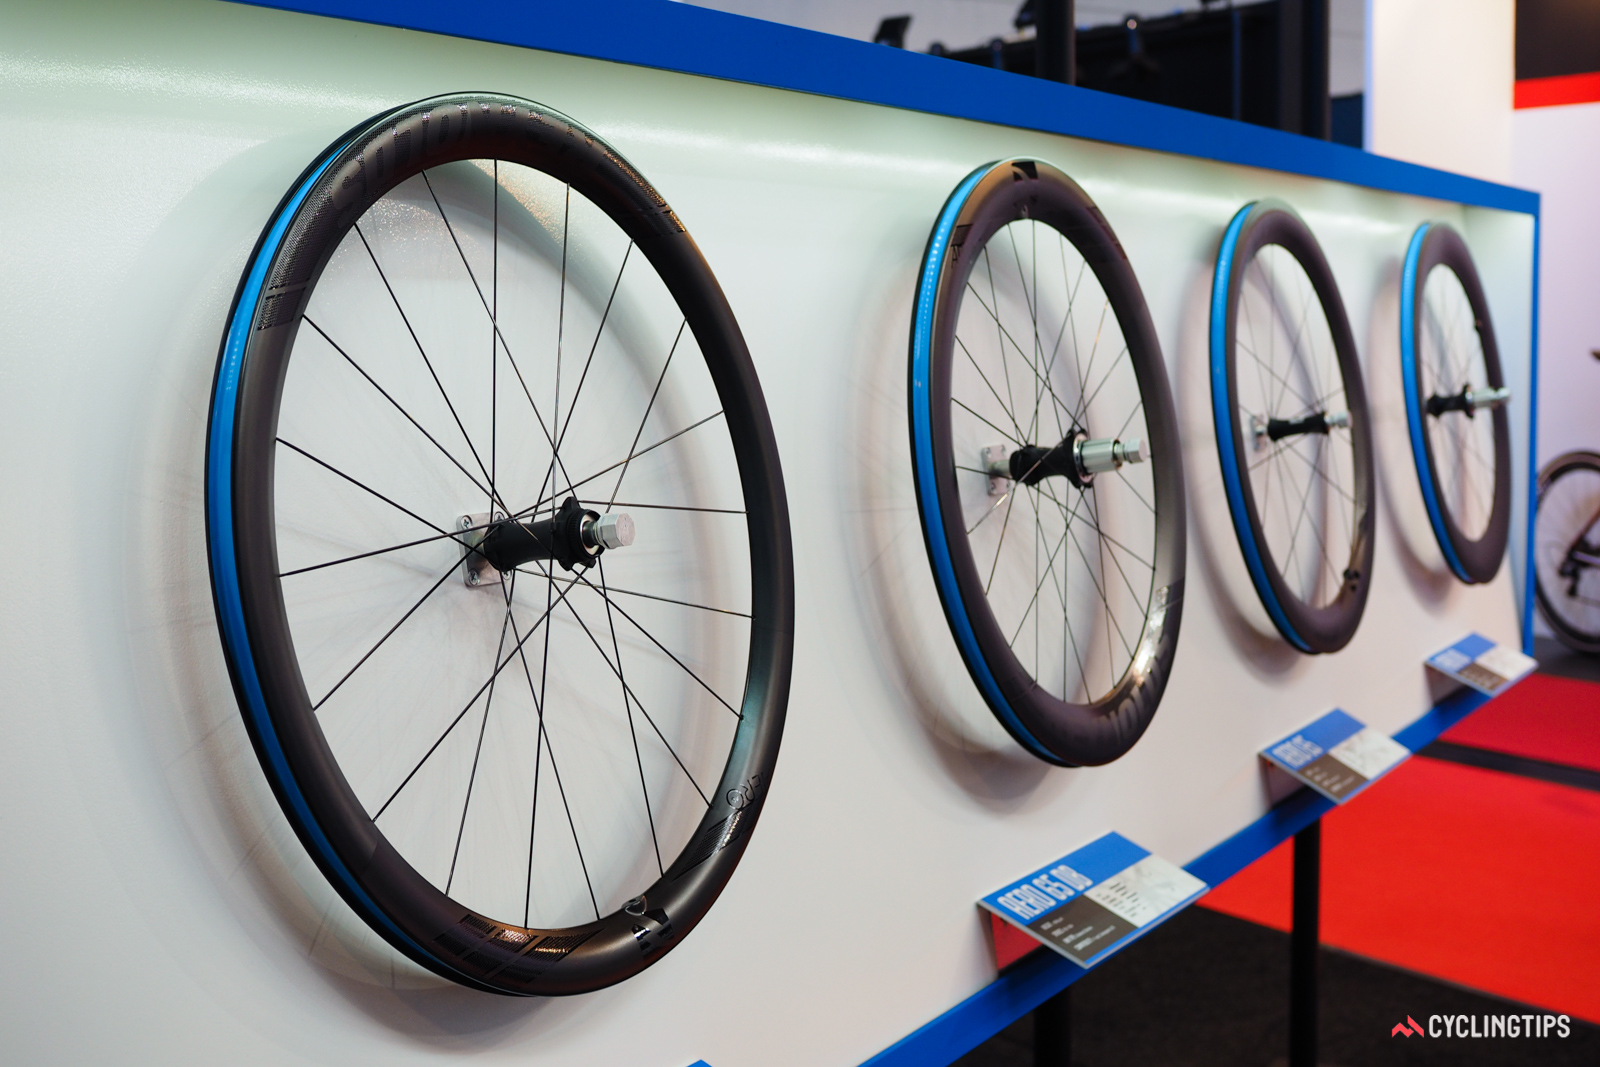 Reynolds' revamped aero wheels are all built on wider formats with 19mm of space between the bead hooks.